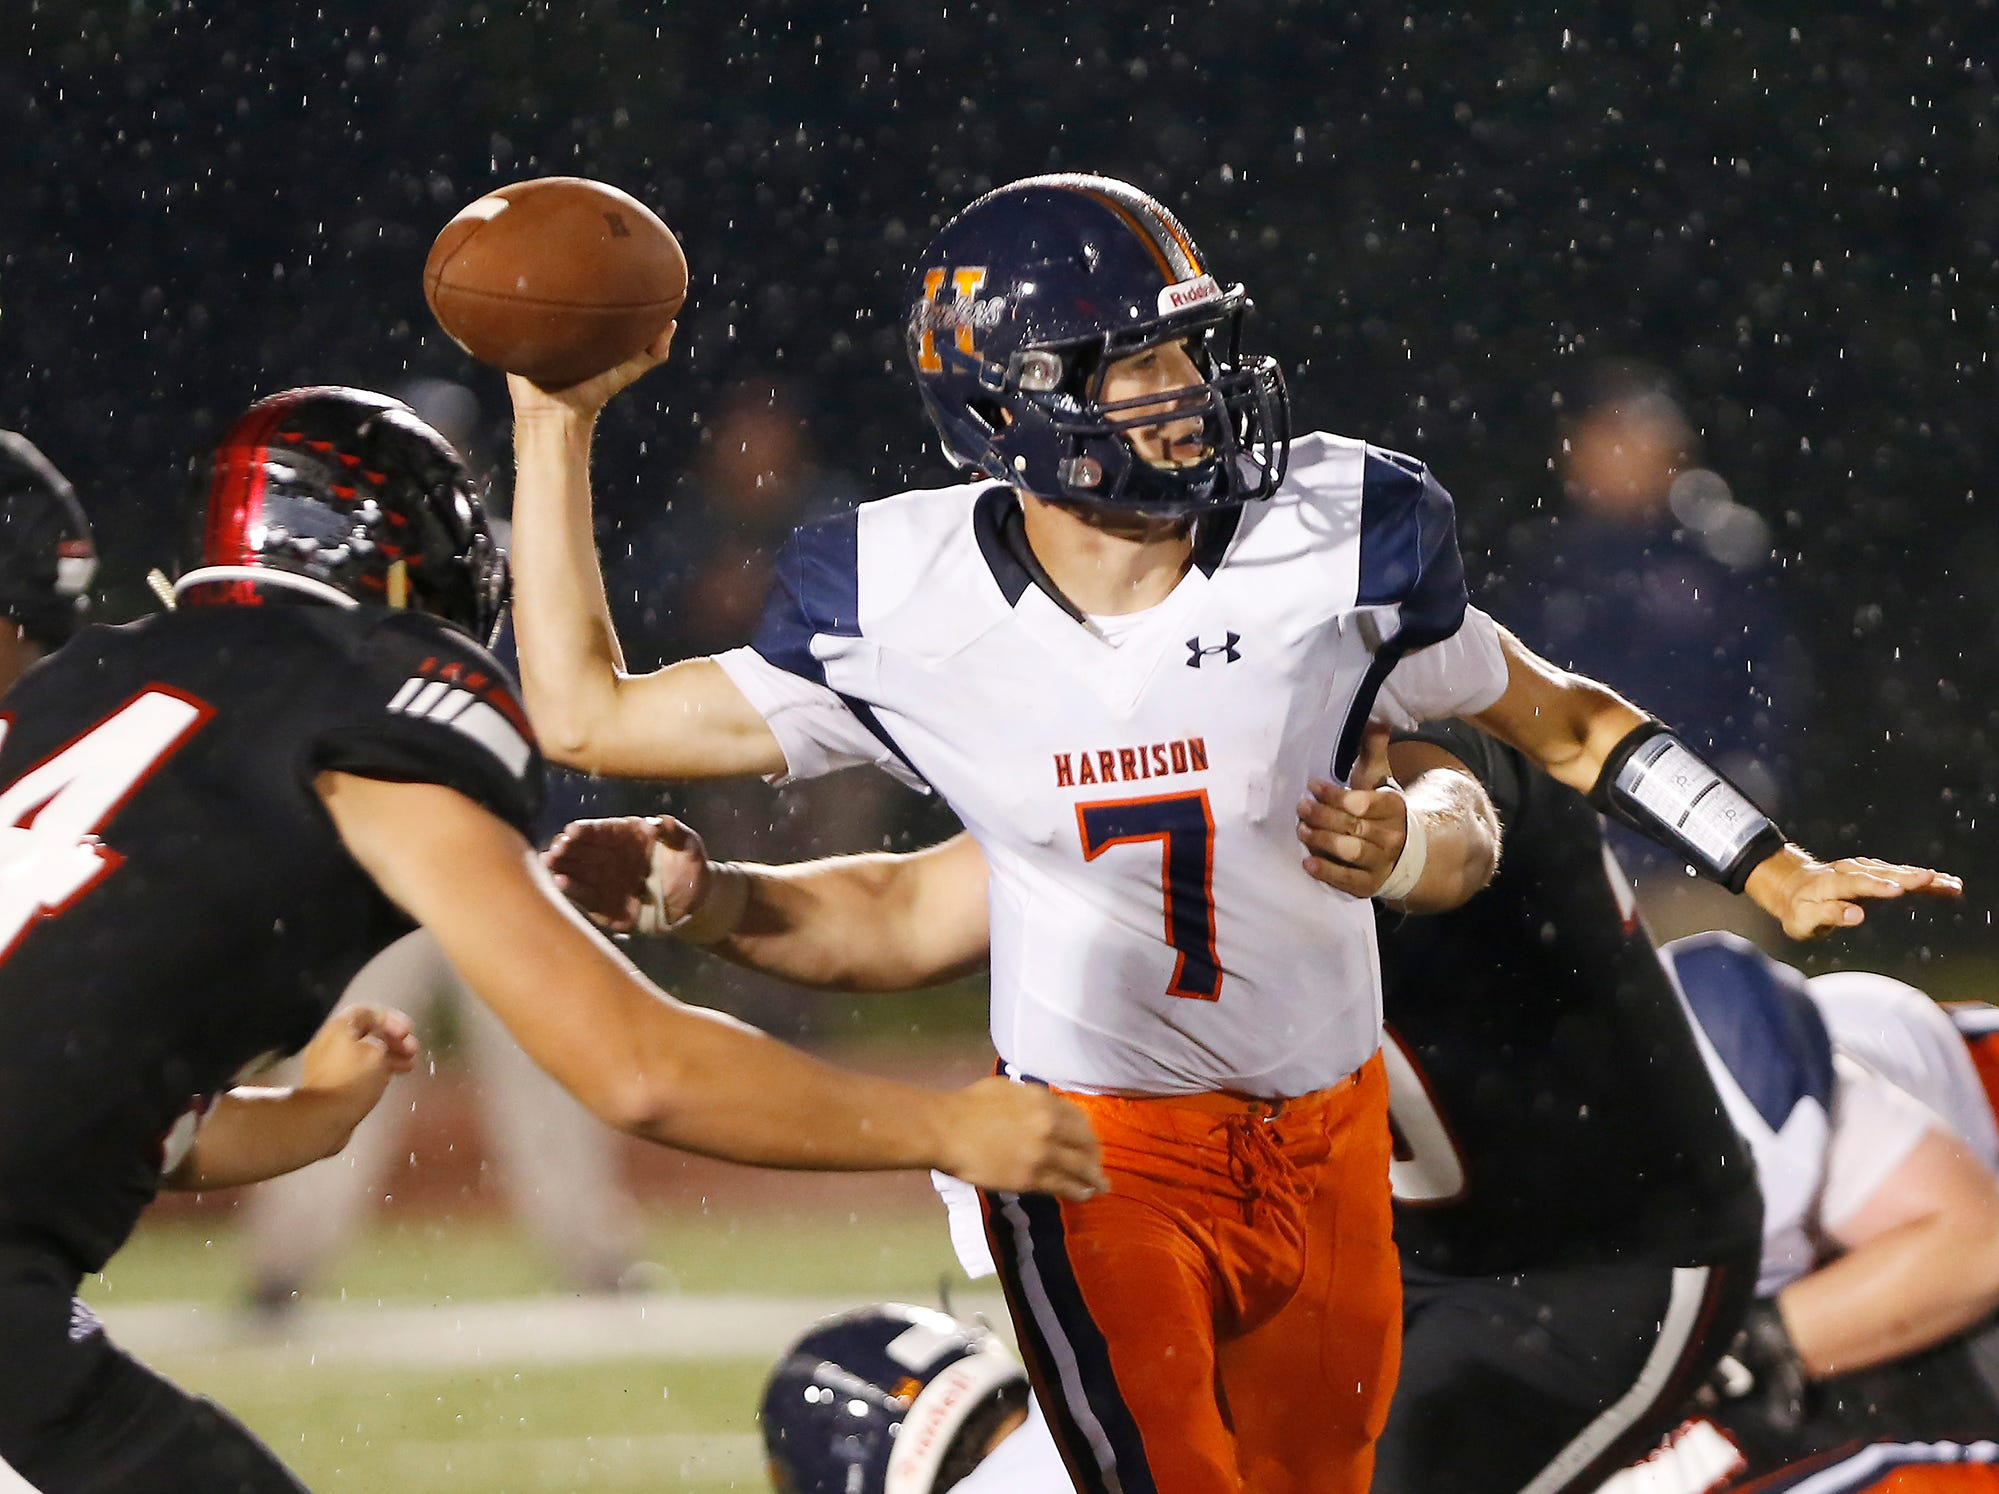 Harrison quarterback Andrew Jensen looks to get off a pass before being sacked by the Lafayette Jeff defense Friday, September 7, 2018, at Scheumann Stadium. Jeff defeated Harrison 31-14.